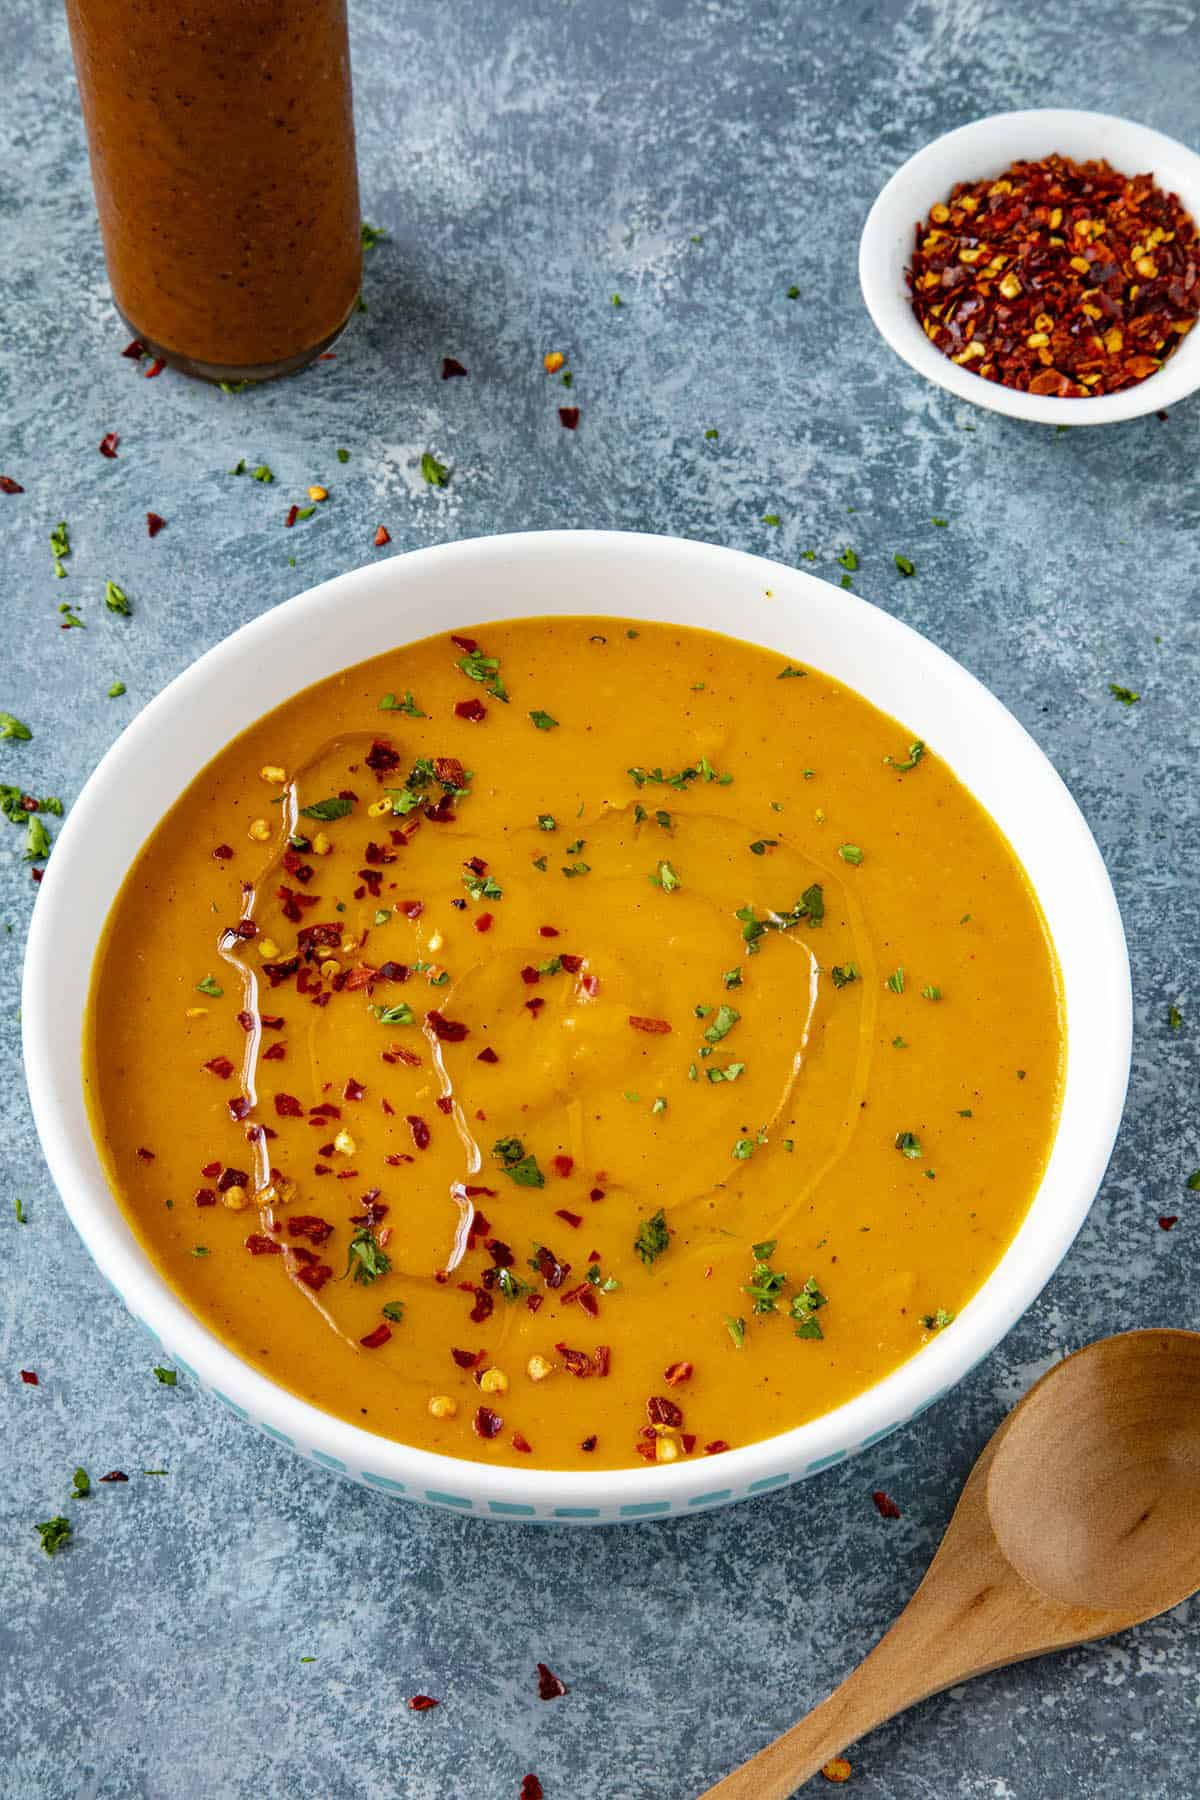 Spicy Cajun-Style Carrot Soup in a bowl with chili flakes